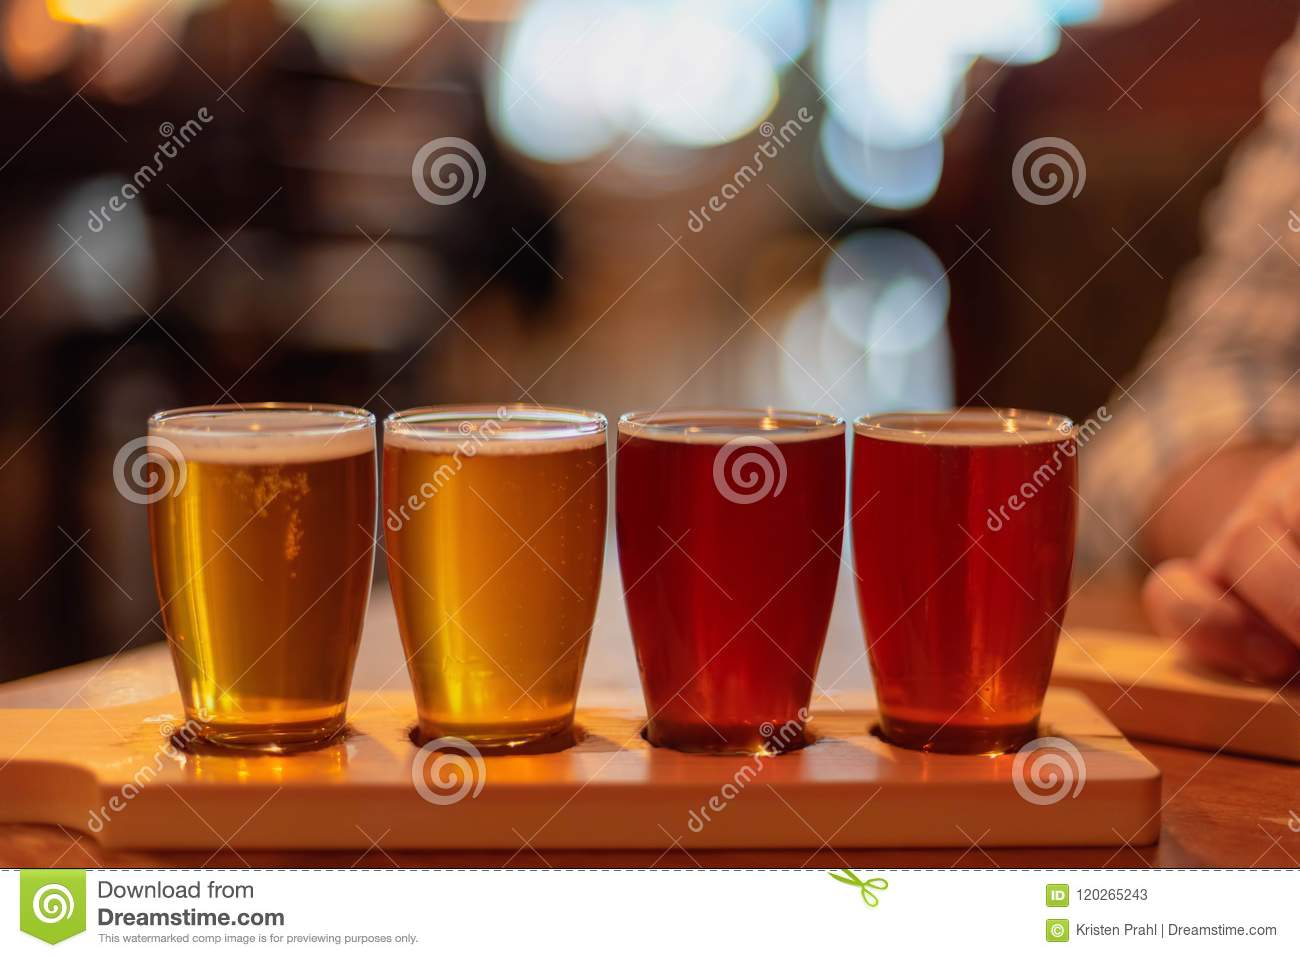 Glasses of craft beer lined up on the table